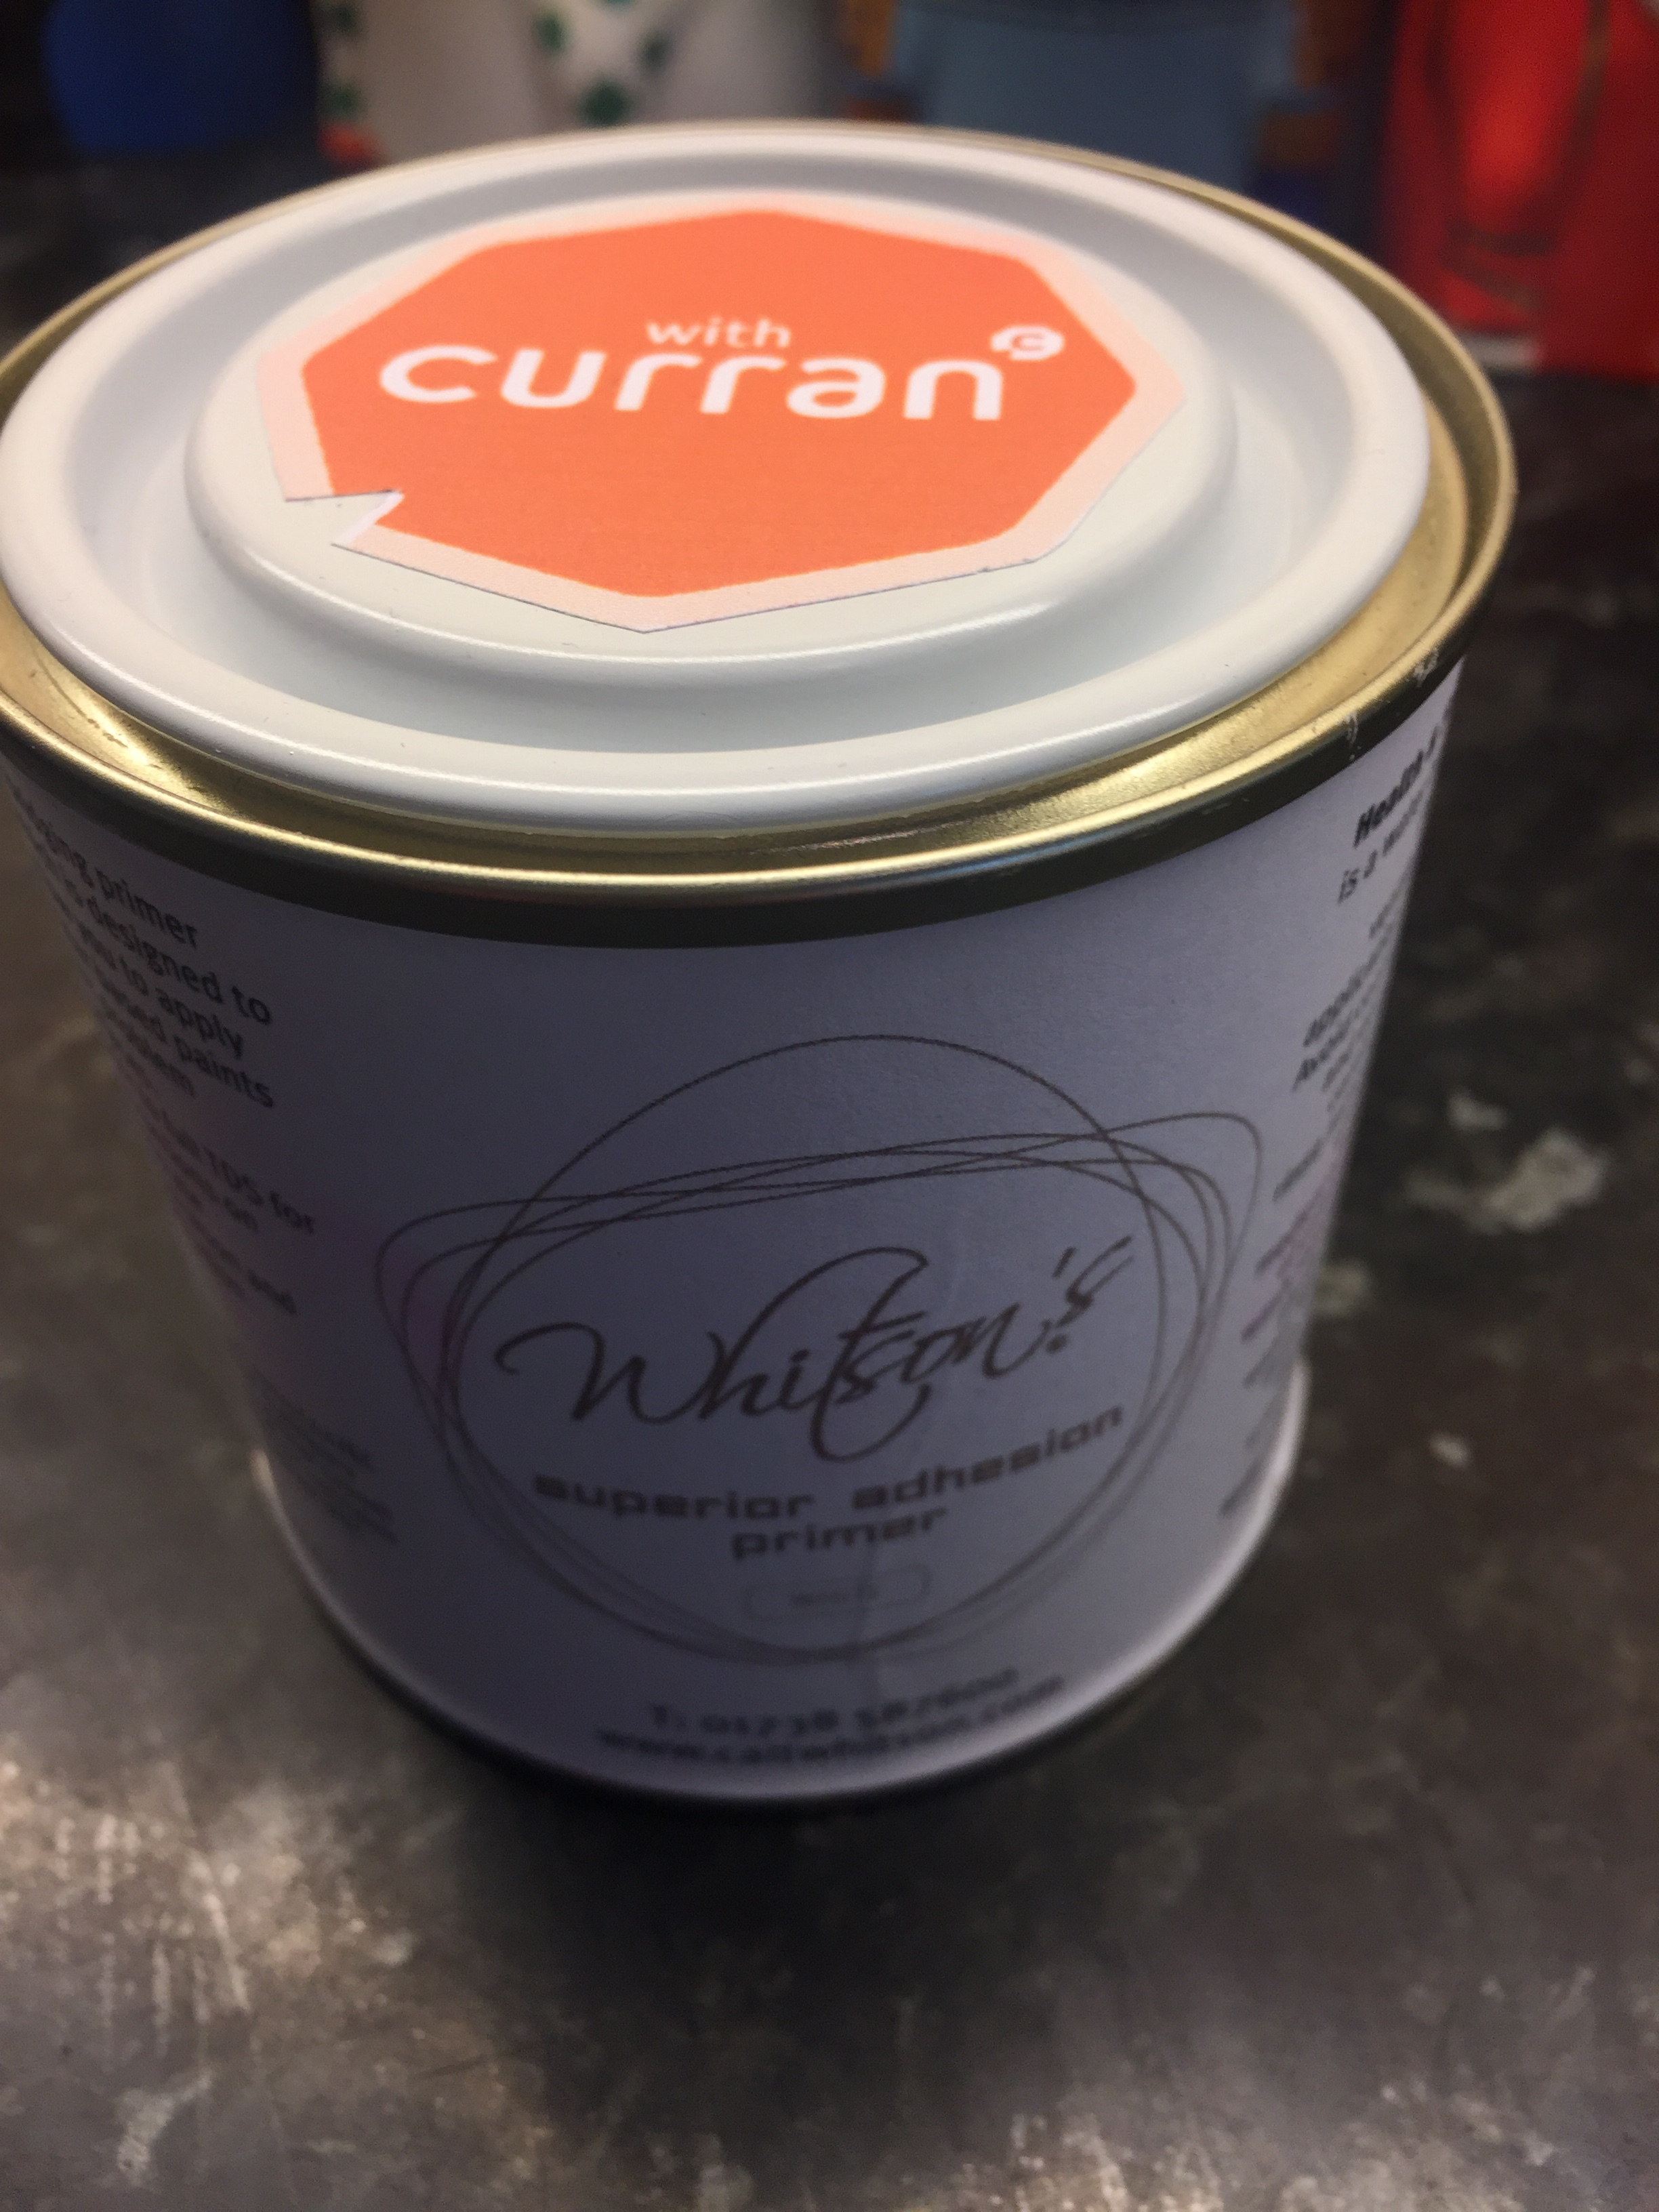 https://walleffects.co.uk/decorative-products/whitson-s-superior-adhesion-primer.html